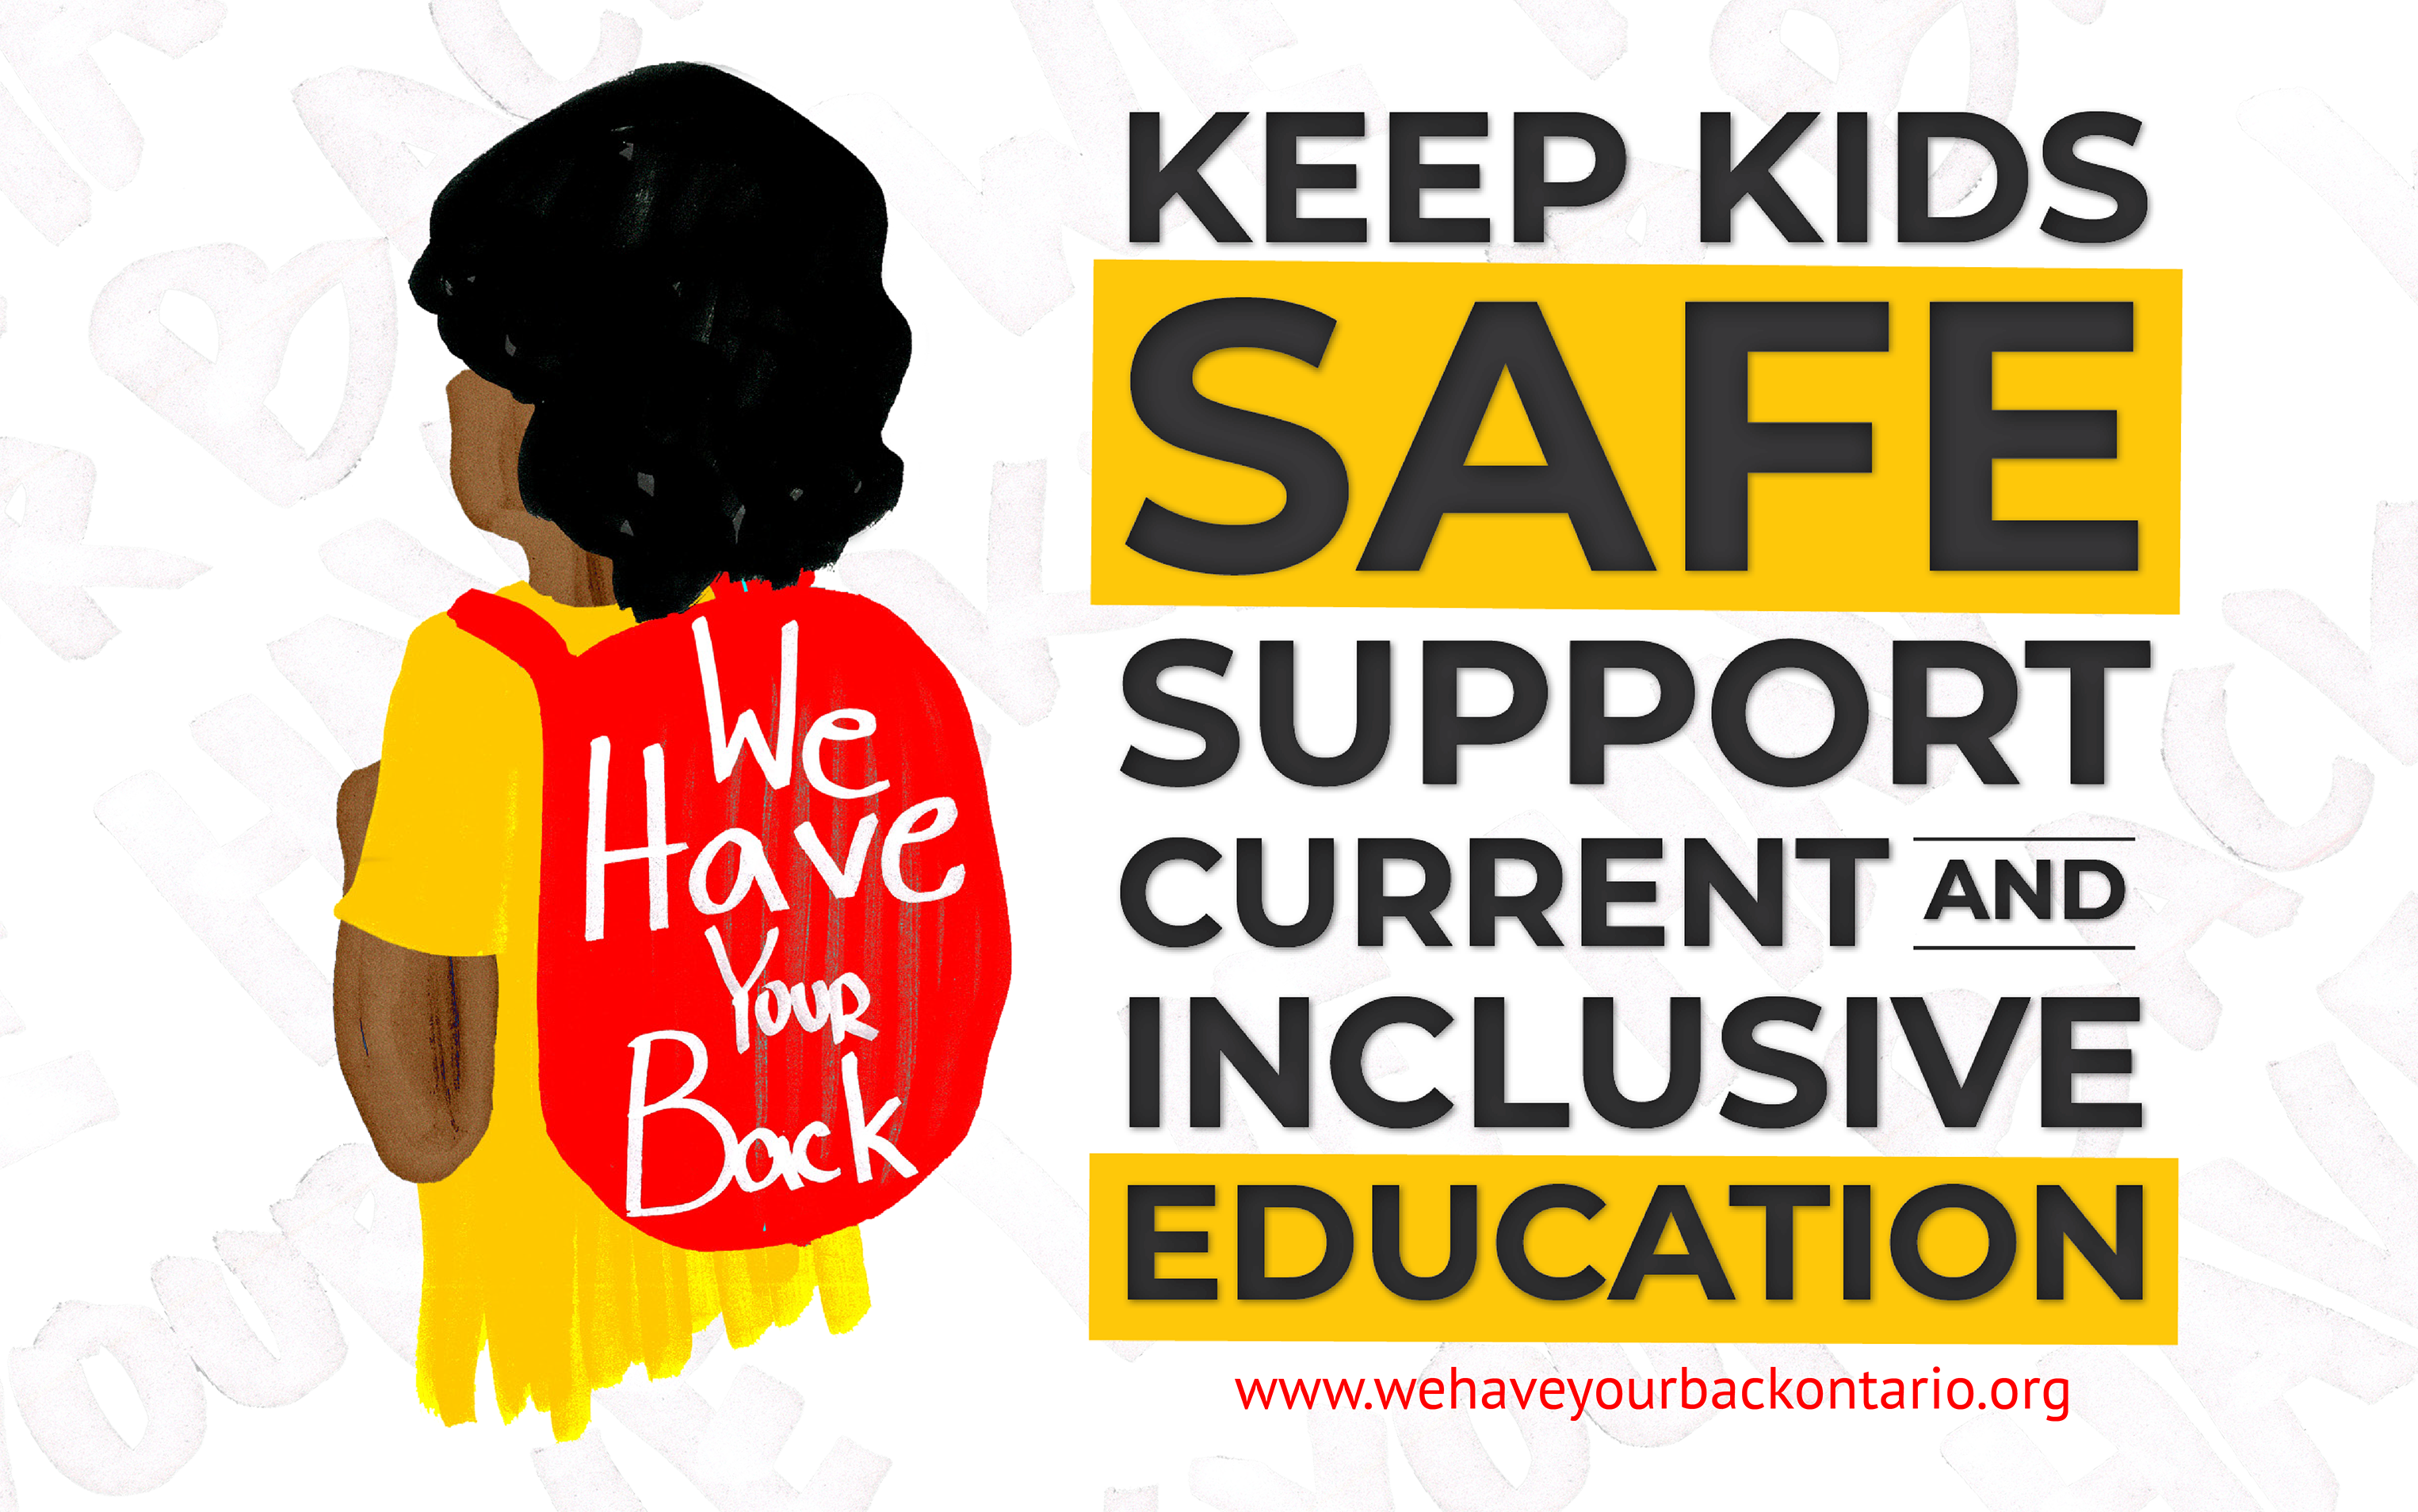 Illustration of a kid with a backpack that reads: we have your back. Poster reads: Keep kids safe, support current and inclusive education.